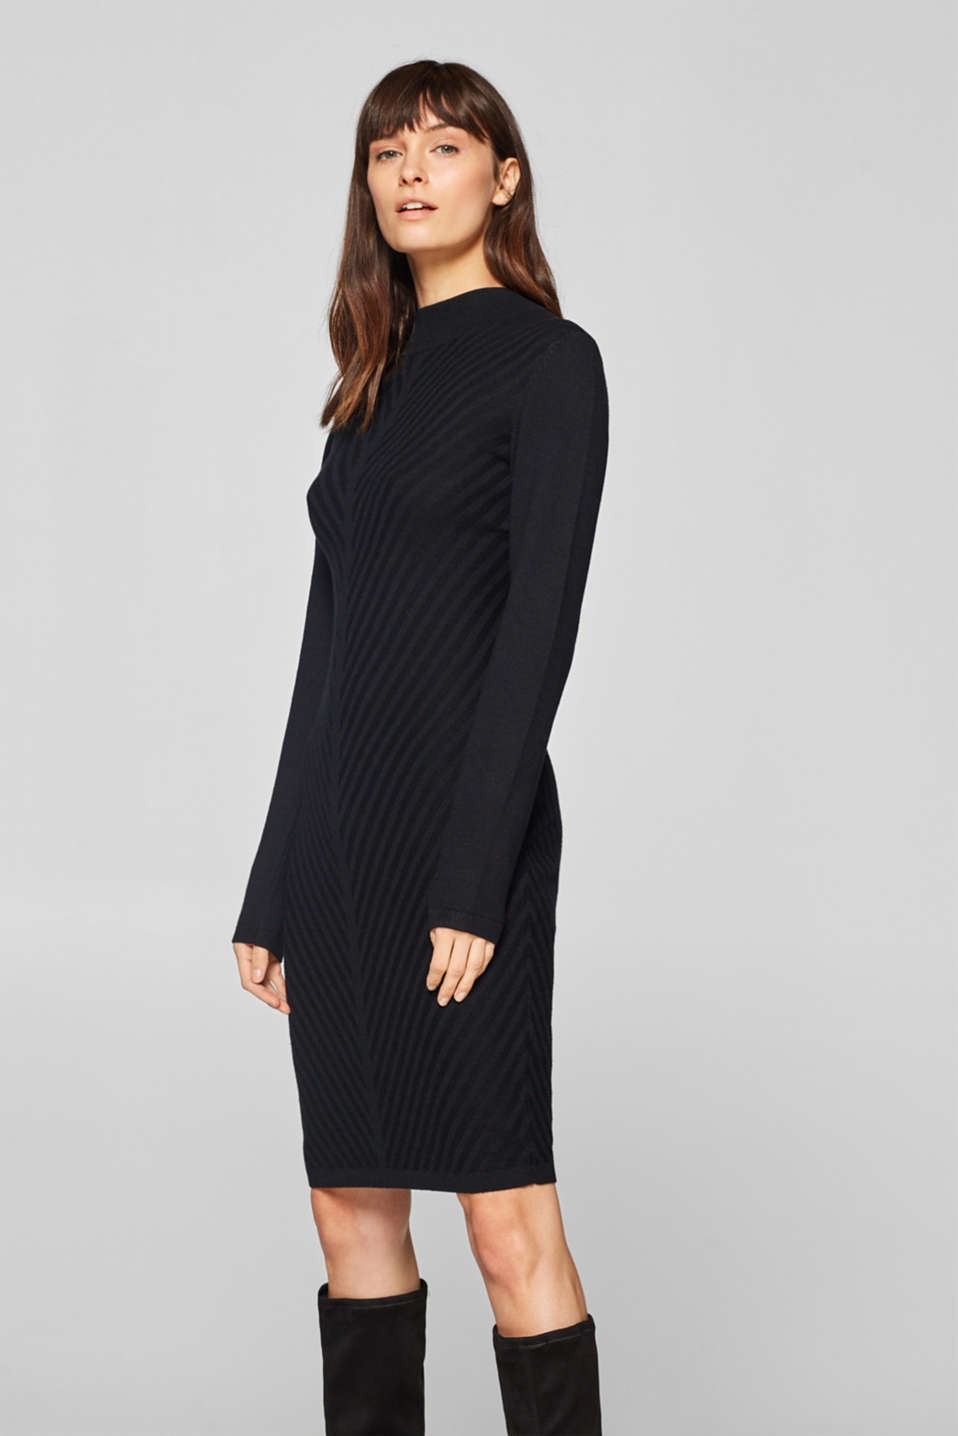 14c0db3c147002 edc - Knitted dress with a diagonal striped texture at our Online Shop